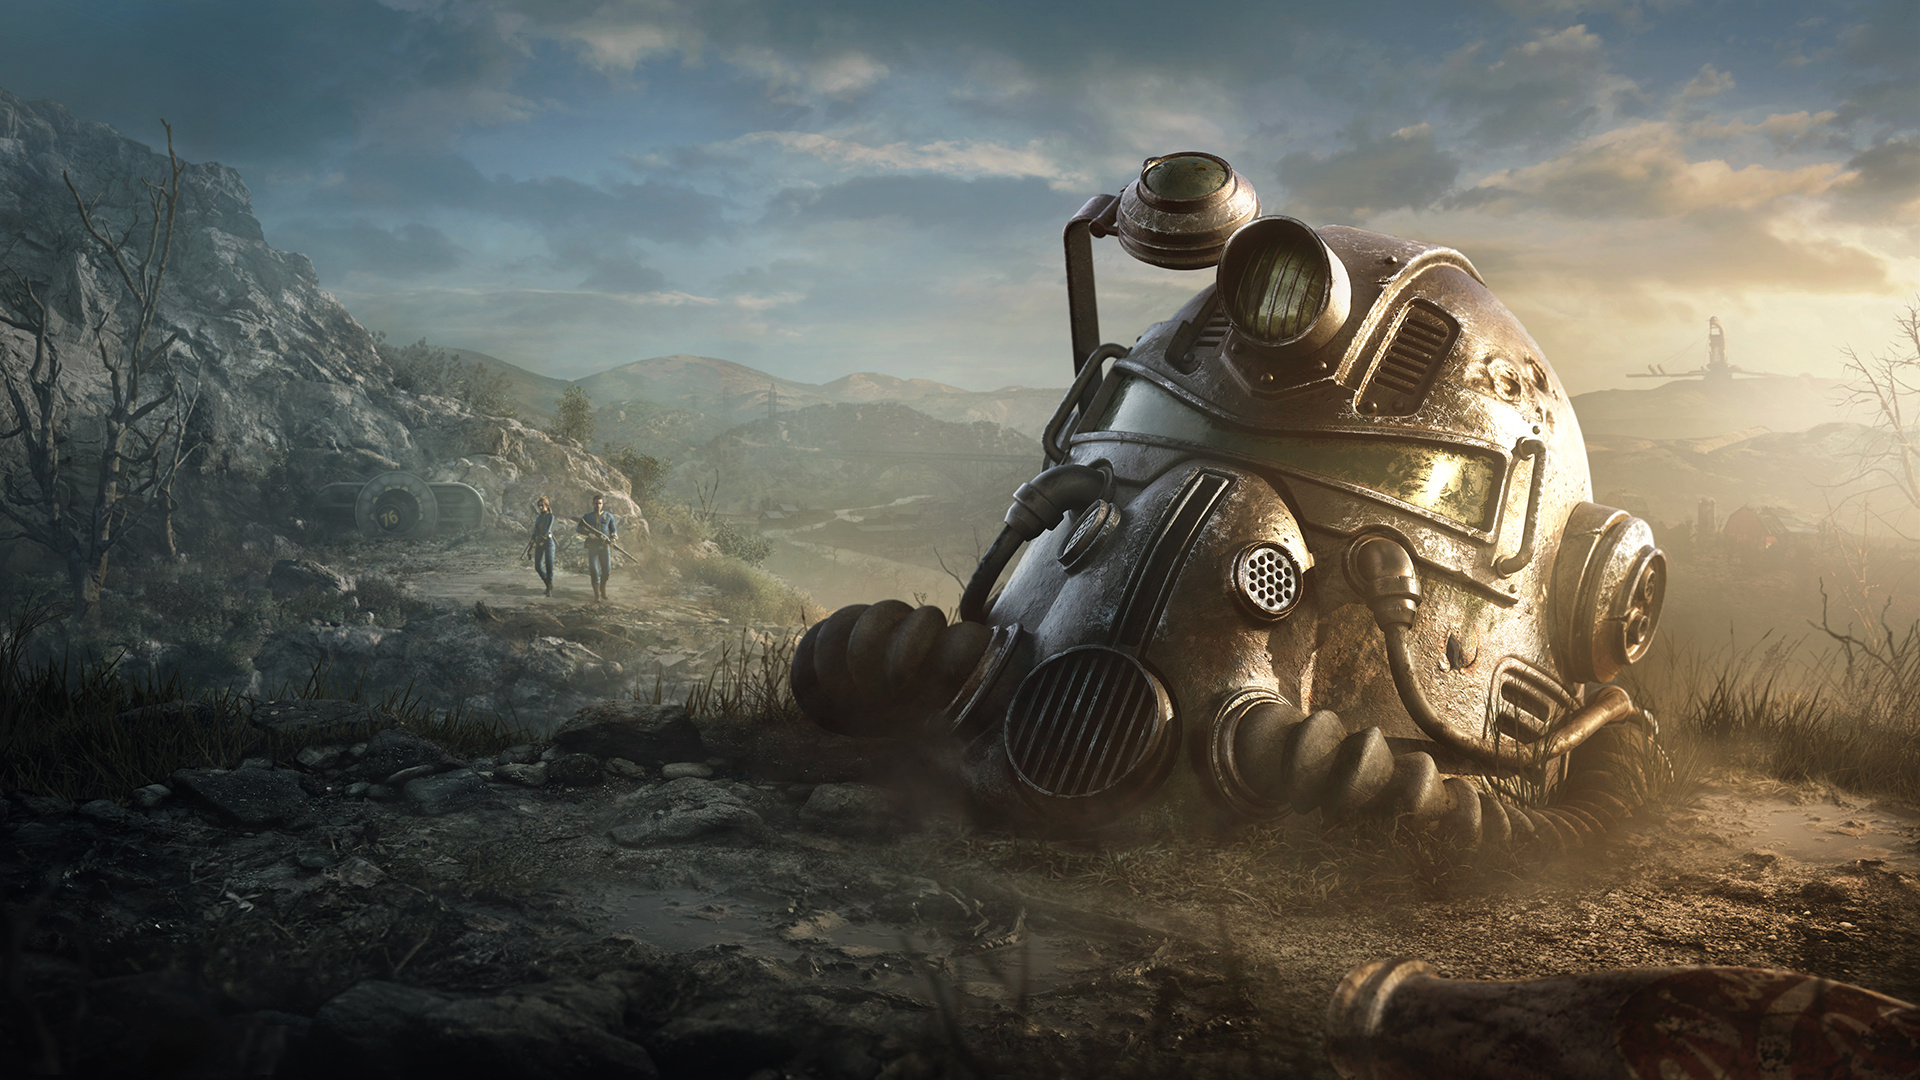 Thumbnail for Fallout 76 — Our Future Begins Campaign